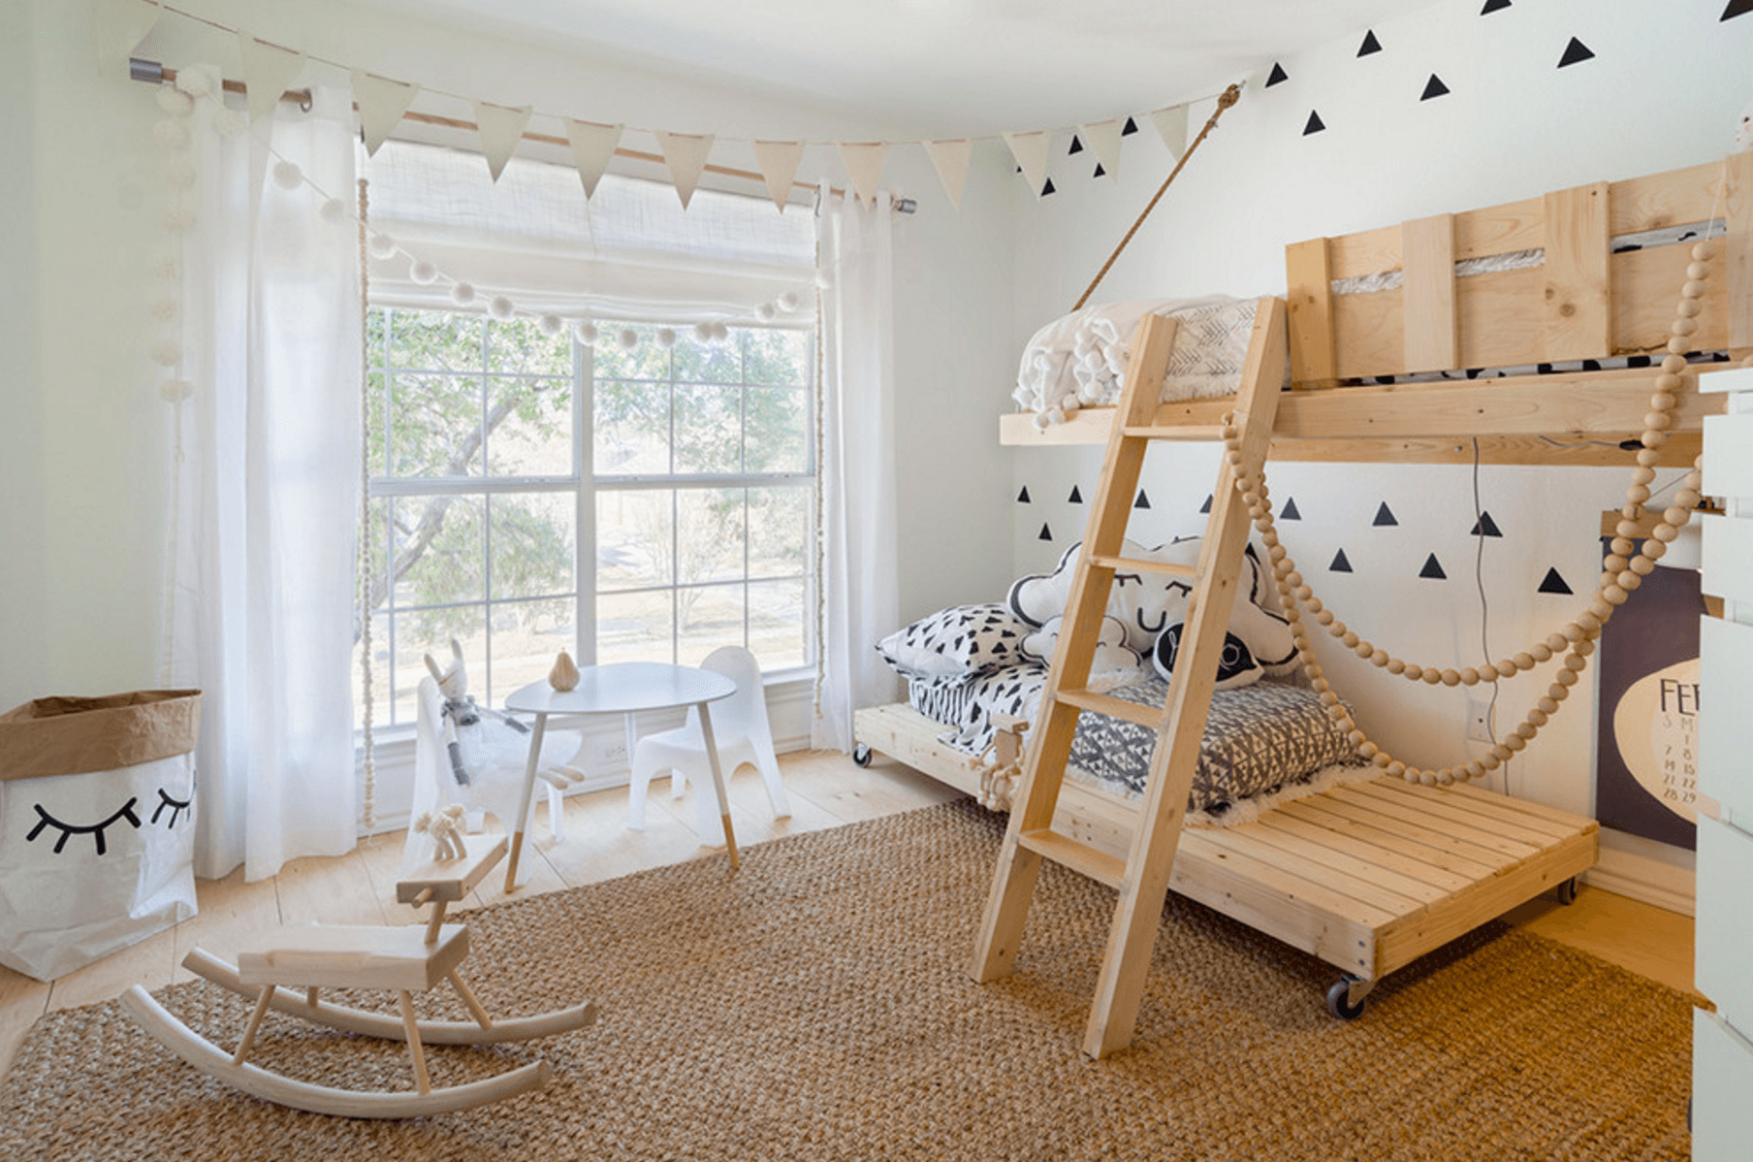 11 Ideas for Adding Color to a Kids Room | Freshome